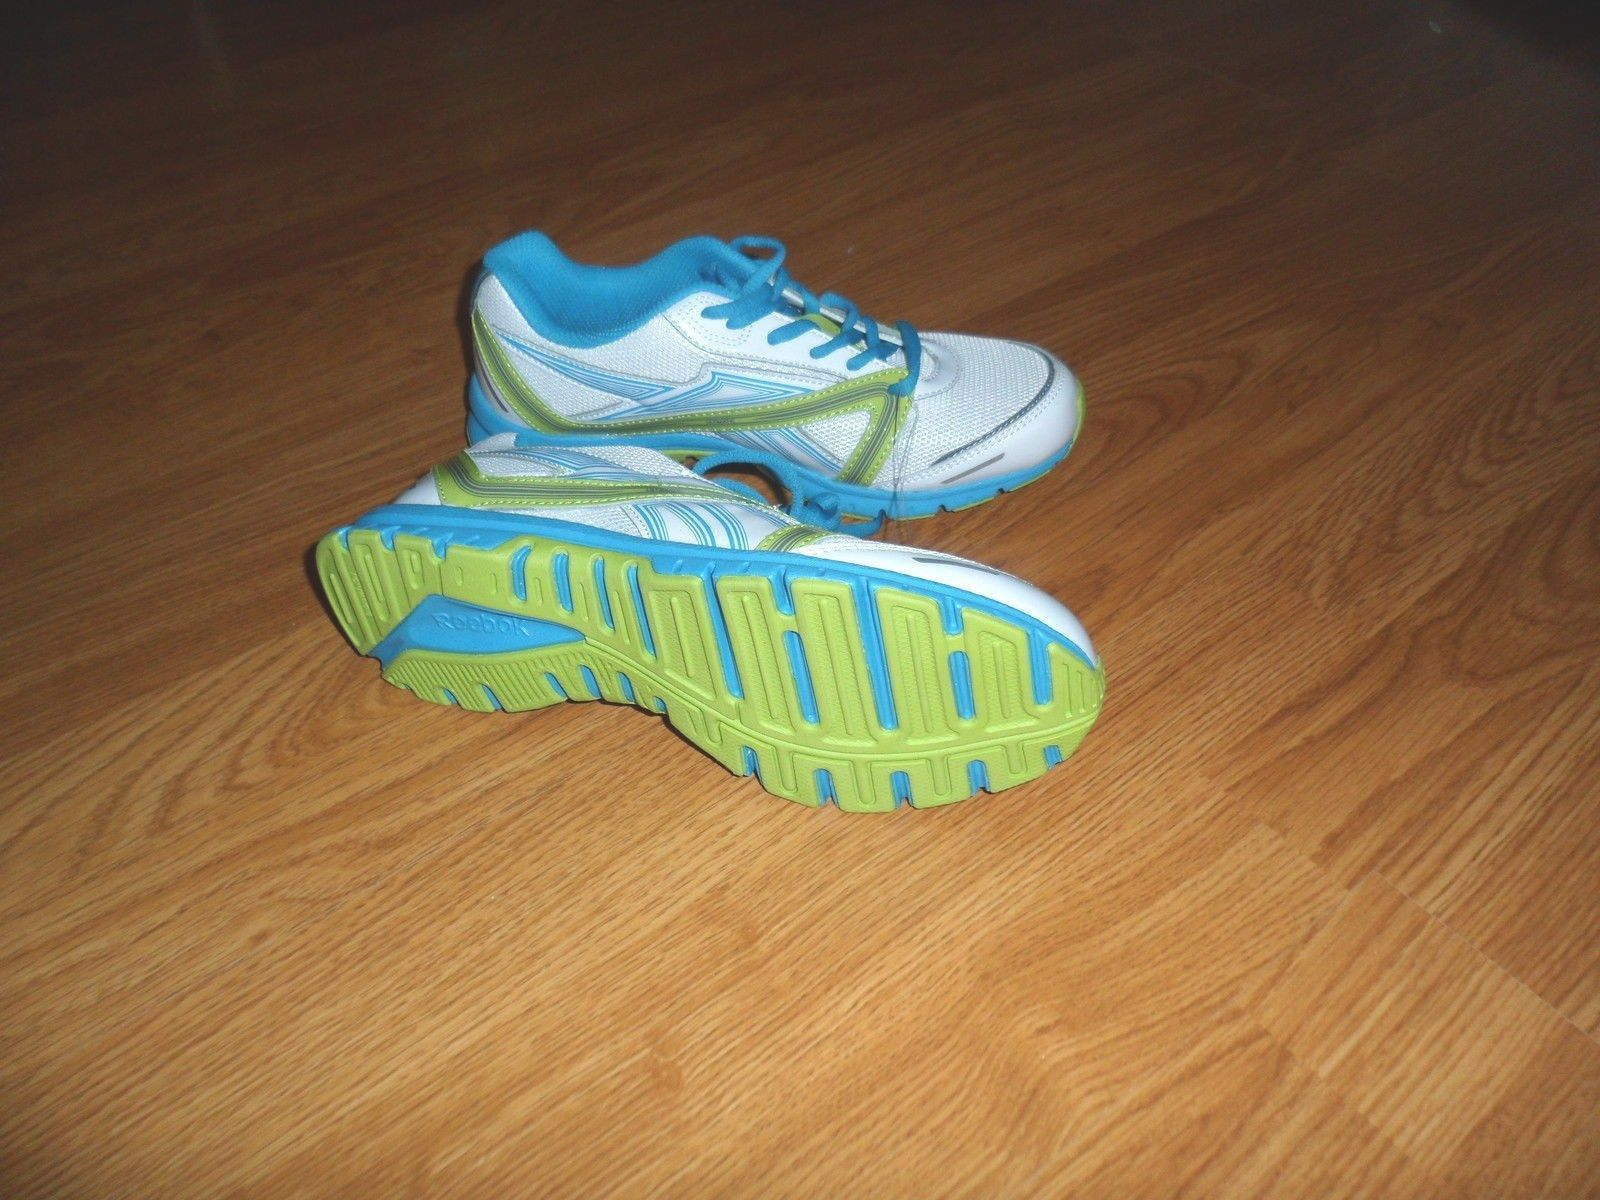 REEBOK ULTIMATIC RUNNING SNEAKERS SIZE 5 - 5.5 WHITE BLUE GREEN NWT